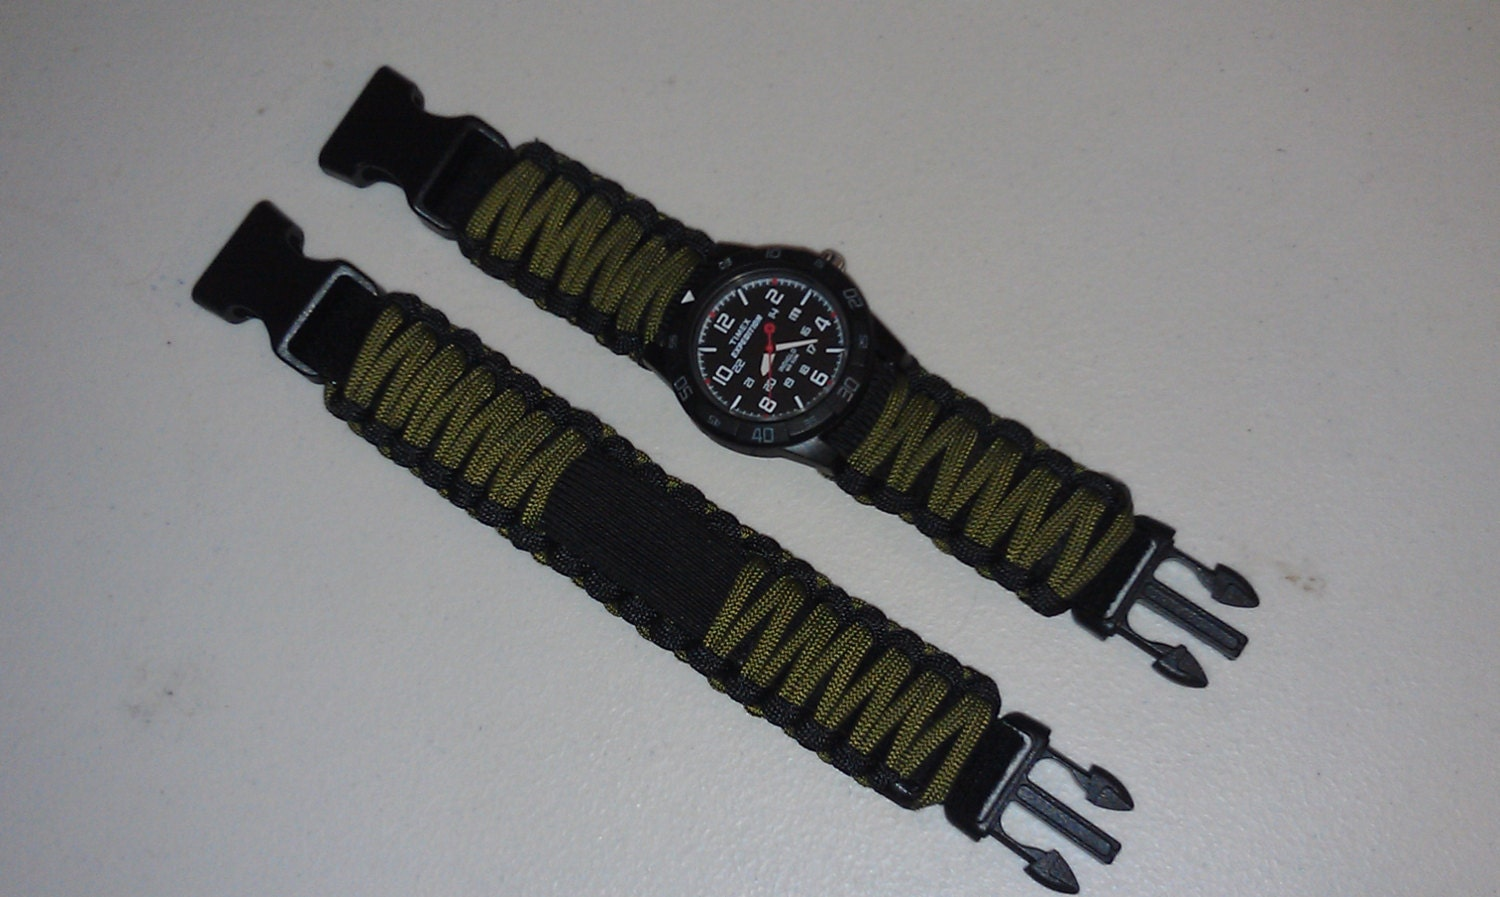 survco tactical replacement watch band usmc wedding band zoom